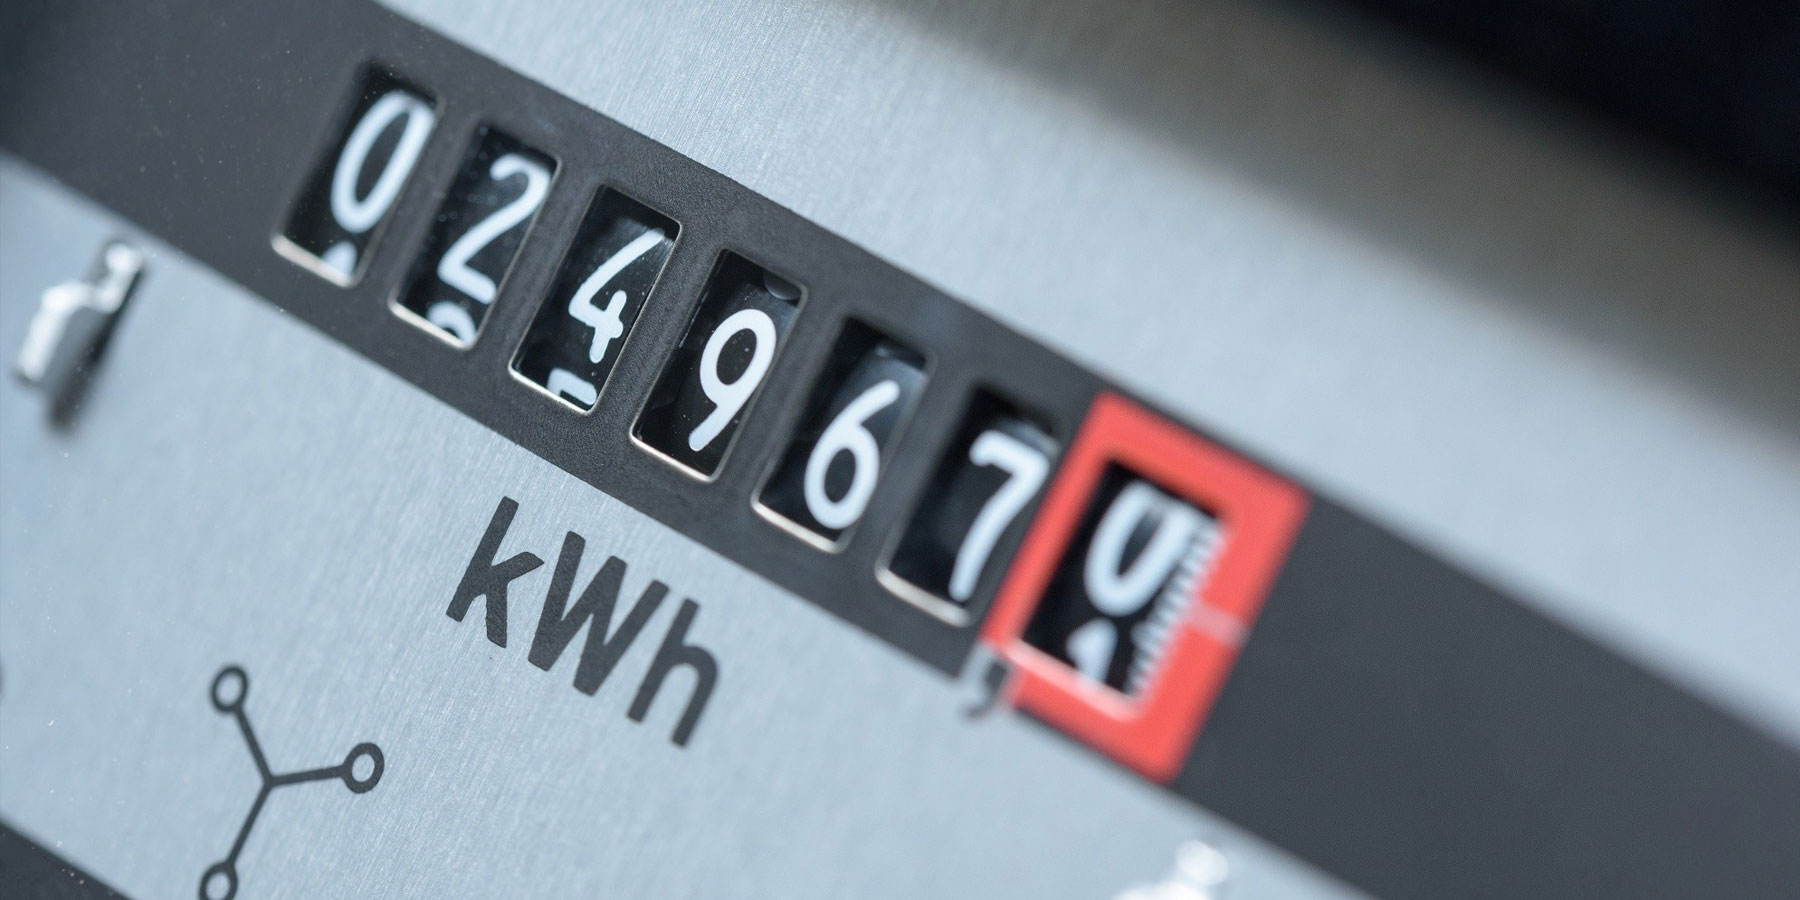 6 TIPS FOR SAVING MONEY ON ELECTRICITY THIS WINTER